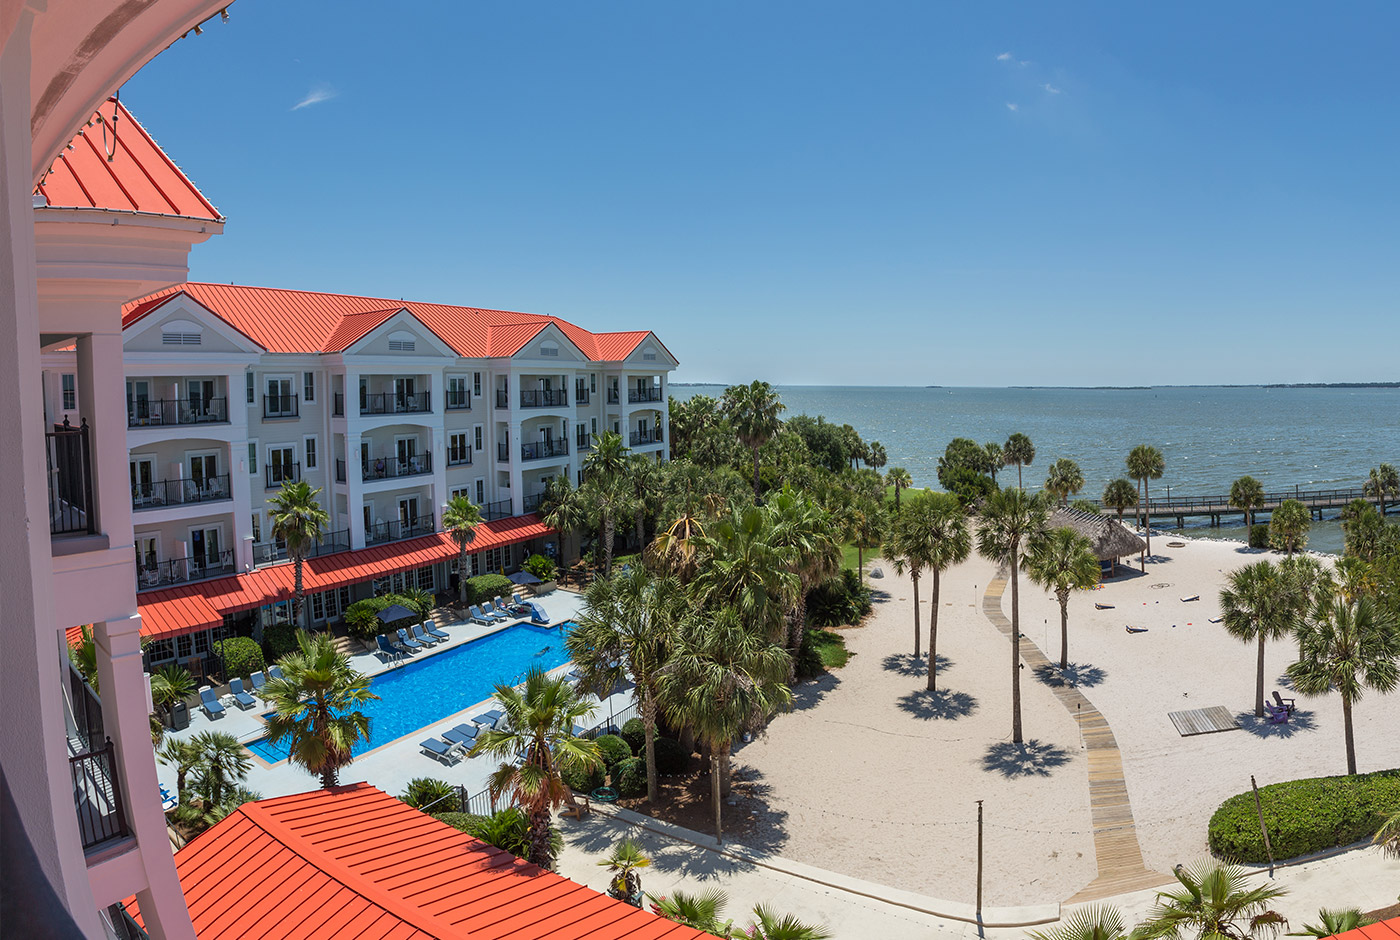 Aerial View of Harborside Resort in Charleston South Carolina